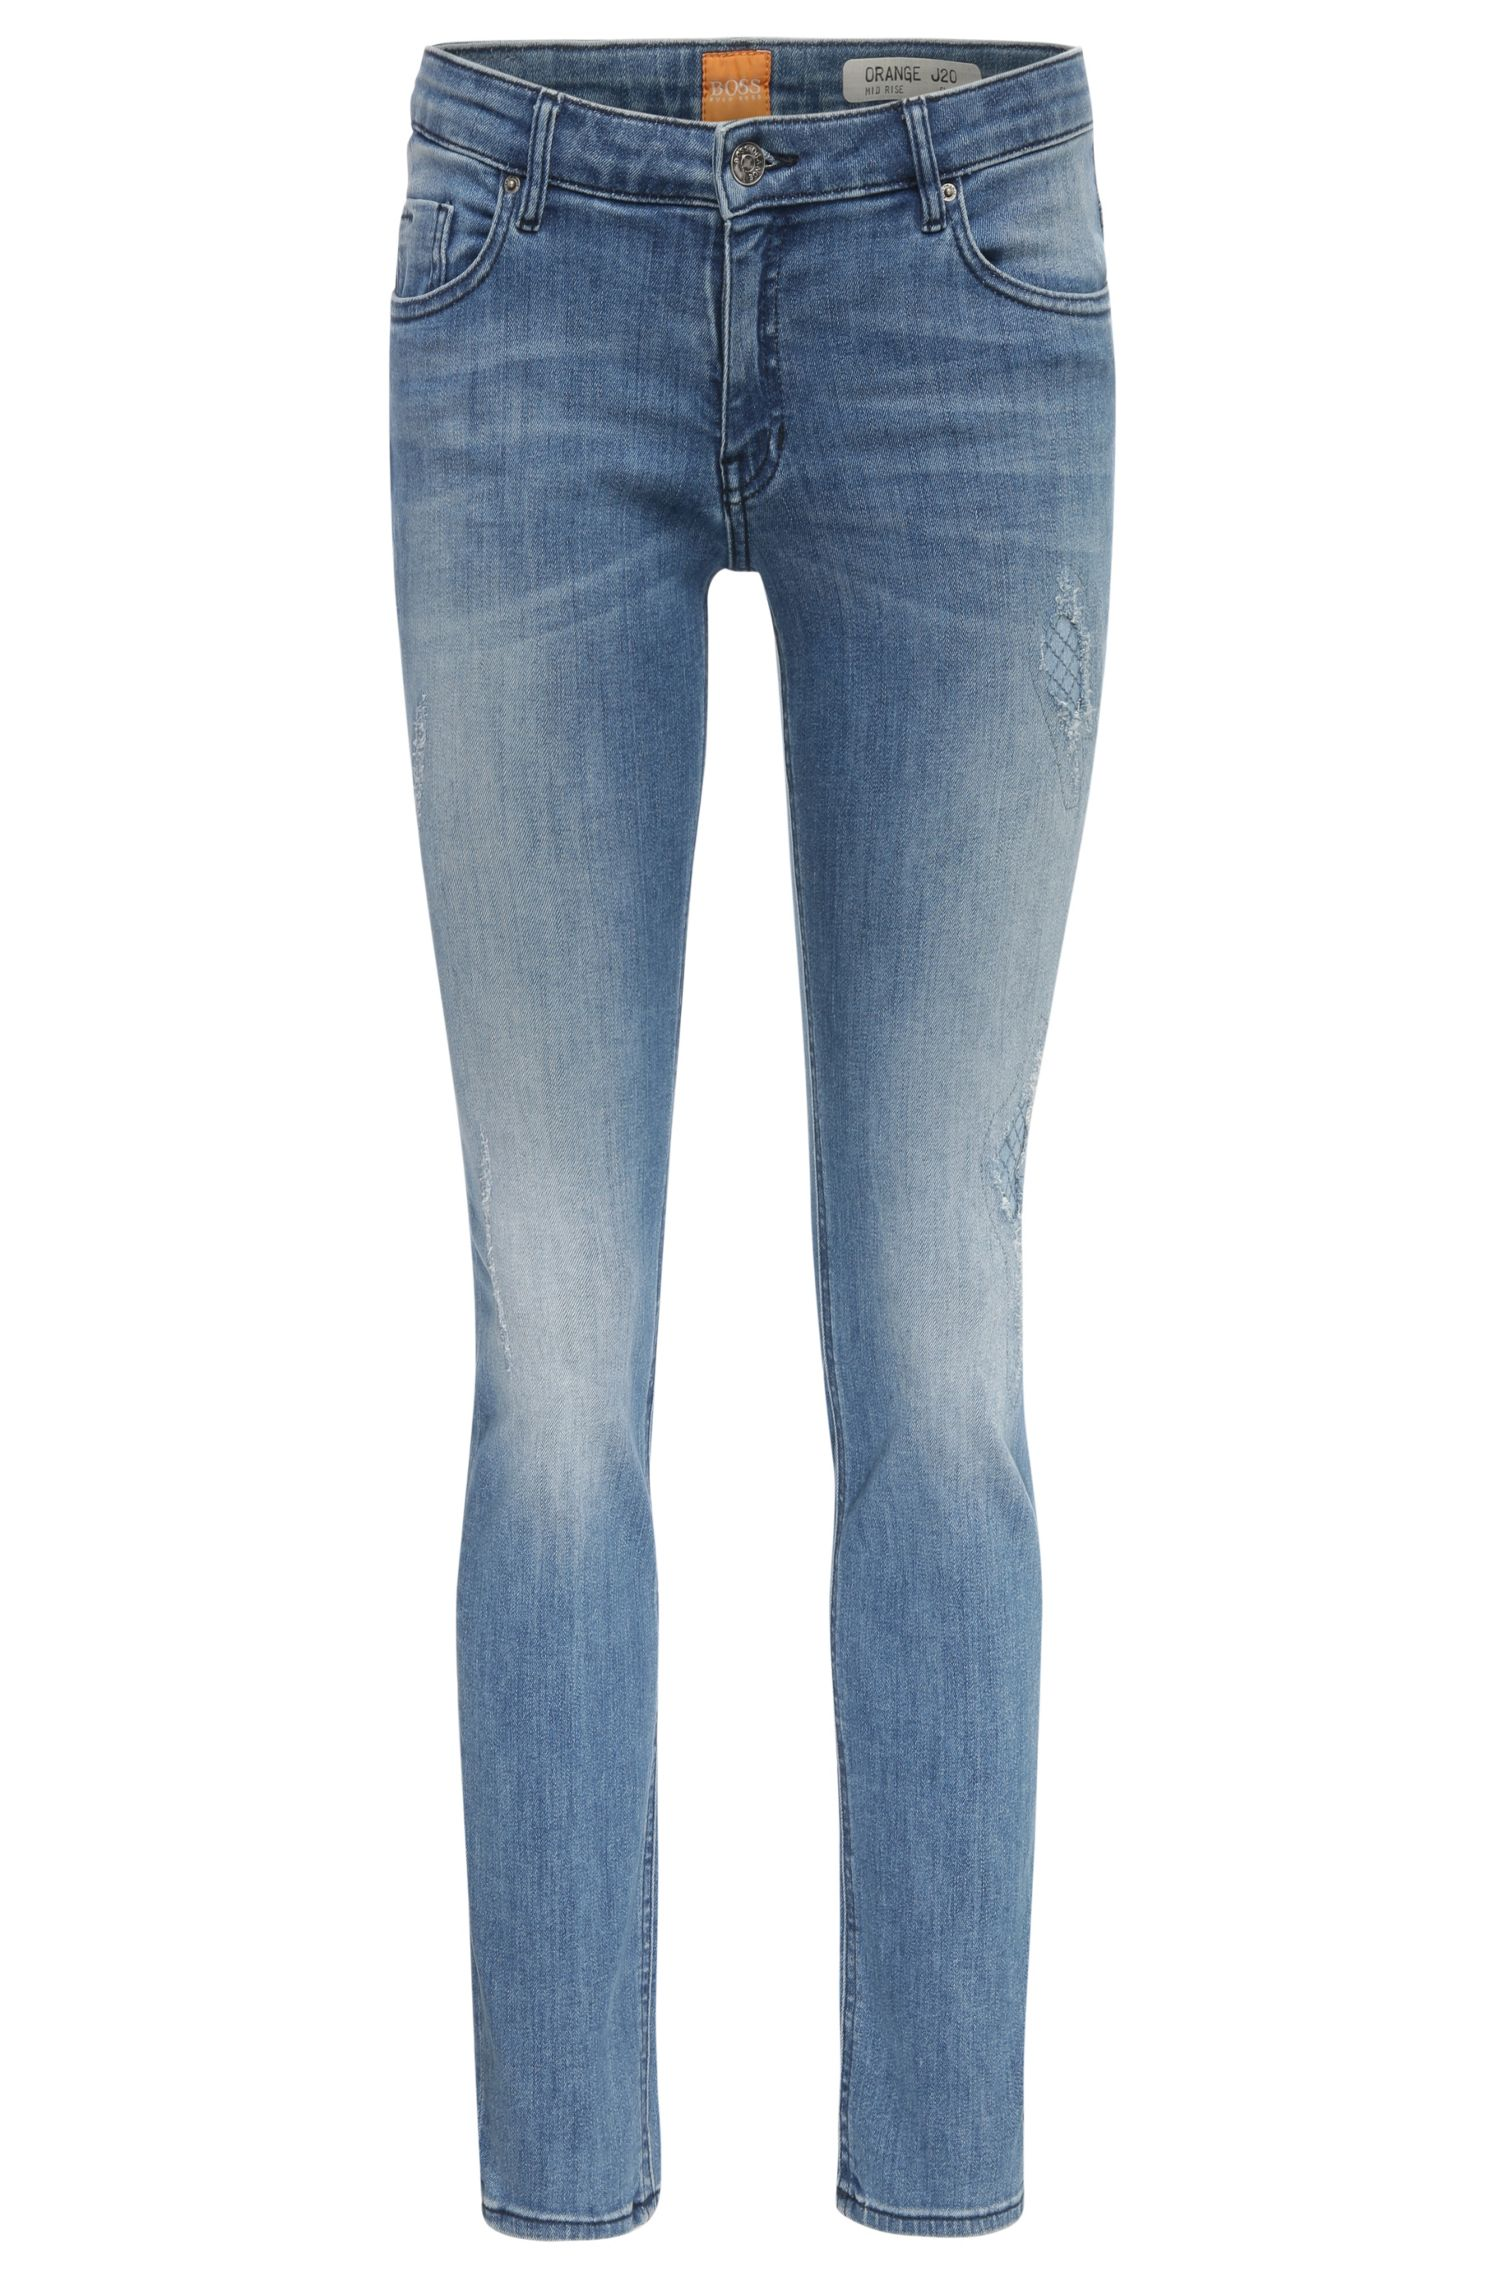 'Orange J20 Berlin' | Stretch Cotton Blend Mid-Rise Jeans